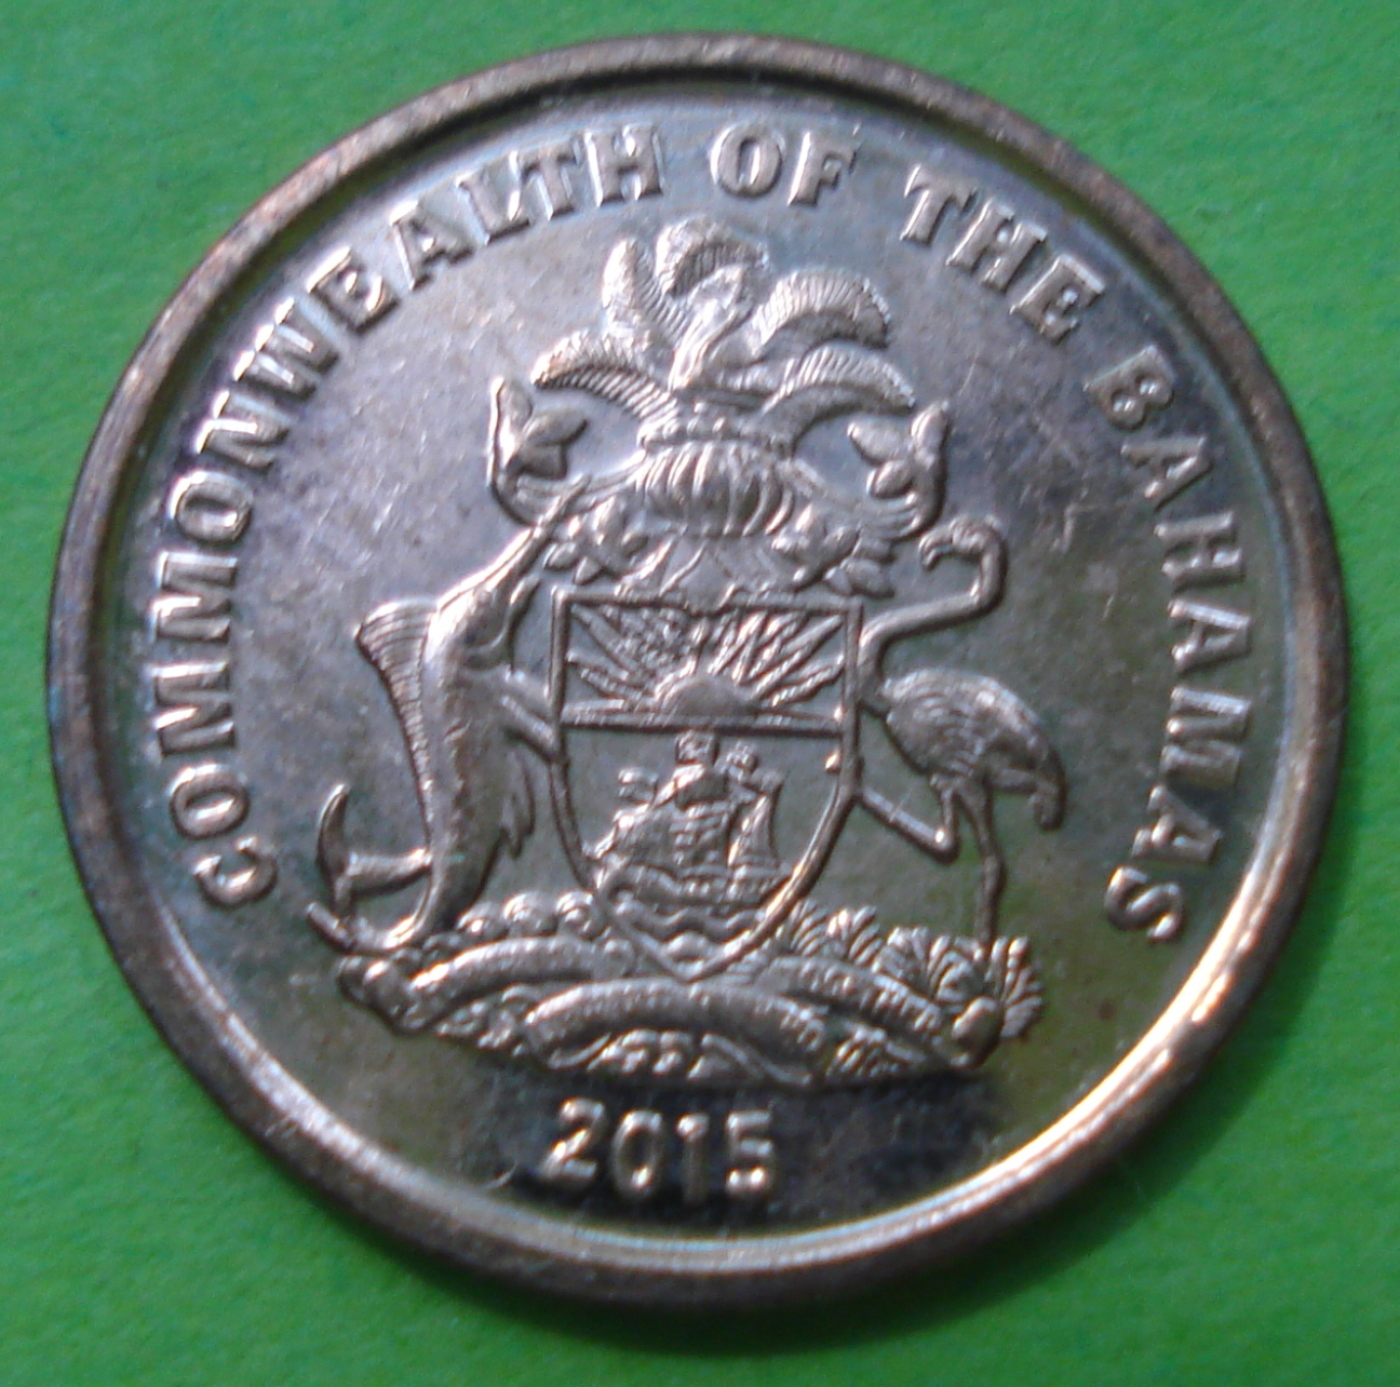 1 Cent 2015, Commonwealth (2010-2019) - Bahamas - Coin - 39041